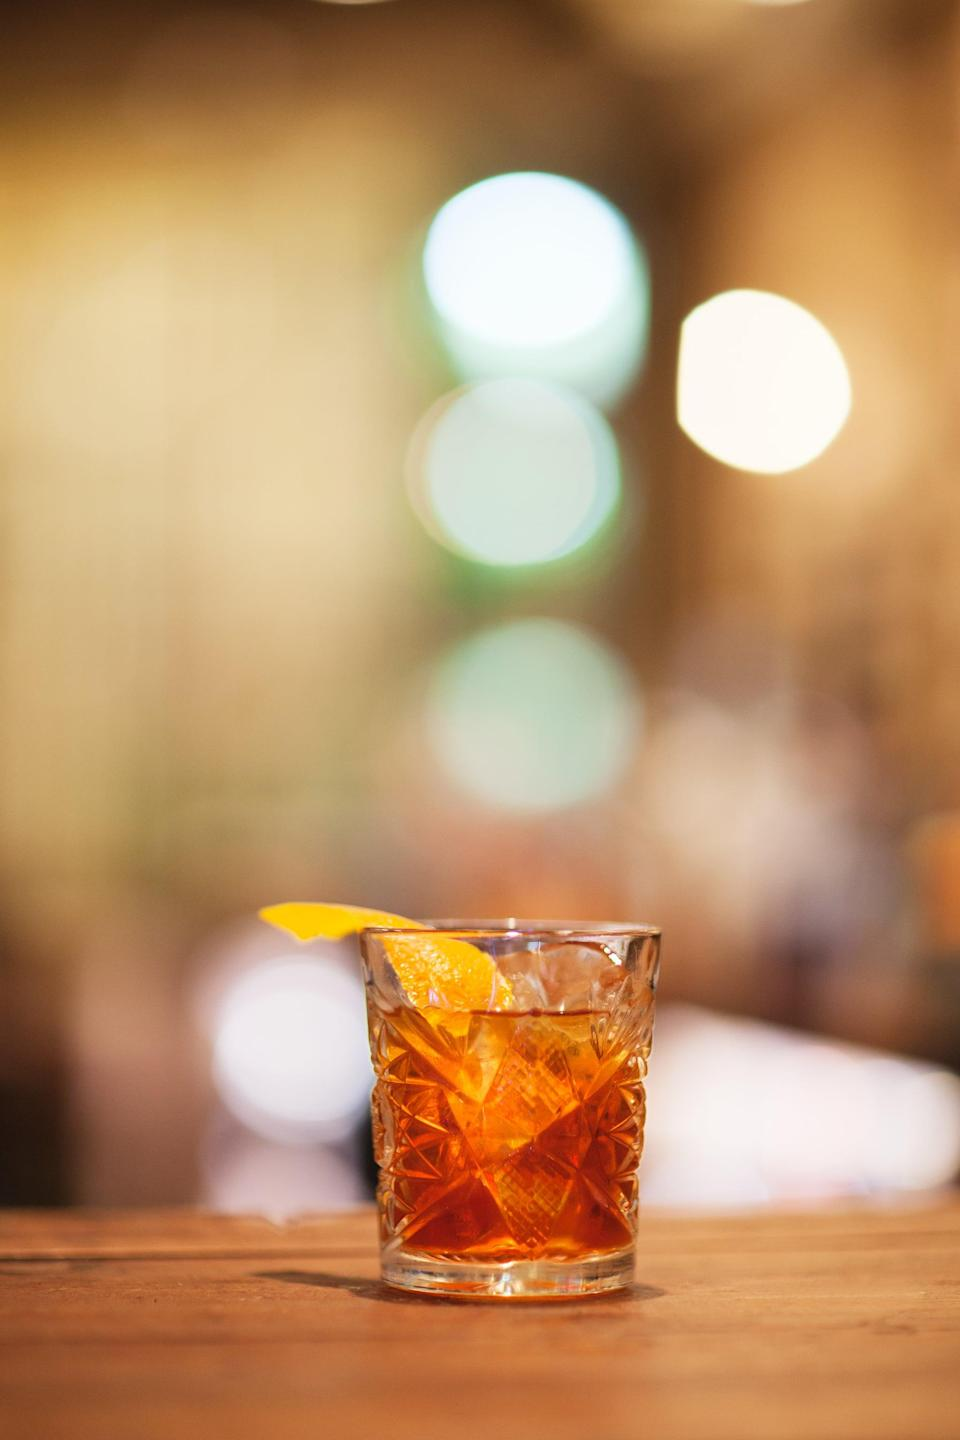 """<p>Those dwelling in Virginia are looking for refreshing cocktail recipes, and we can't blame them. There's nothing quite like an icy old fashioned on a hot afternoon.</p> <p><strong>Get the recipe</strong>: <a href=""""https://www.popsugar.com/buy?url=https%3A%2F%2Fwww.thekitchn.com%2Fhow-to-make-a-classic-old-fashioned-cocktail-240338&p_name=old%20fashioned&retailer=thekitchn.com&evar1=yum%3Aus&evar9=47471653&evar98=https%3A%2F%2Fwww.popsugar.com%2Ffood%2Fphoto-gallery%2F47471653%2Fimage%2F47475204%2FVirginia-Old-Fashioned&list1=cocktails%2Cdrinks%2Calcohol%2Crecipes&prop13=api&pdata=1"""" class=""""link rapid-noclick-resp"""" rel=""""nofollow noopener"""" target=""""_blank"""" data-ylk=""""slk:old fashioned"""">old fashioned</a></p>"""